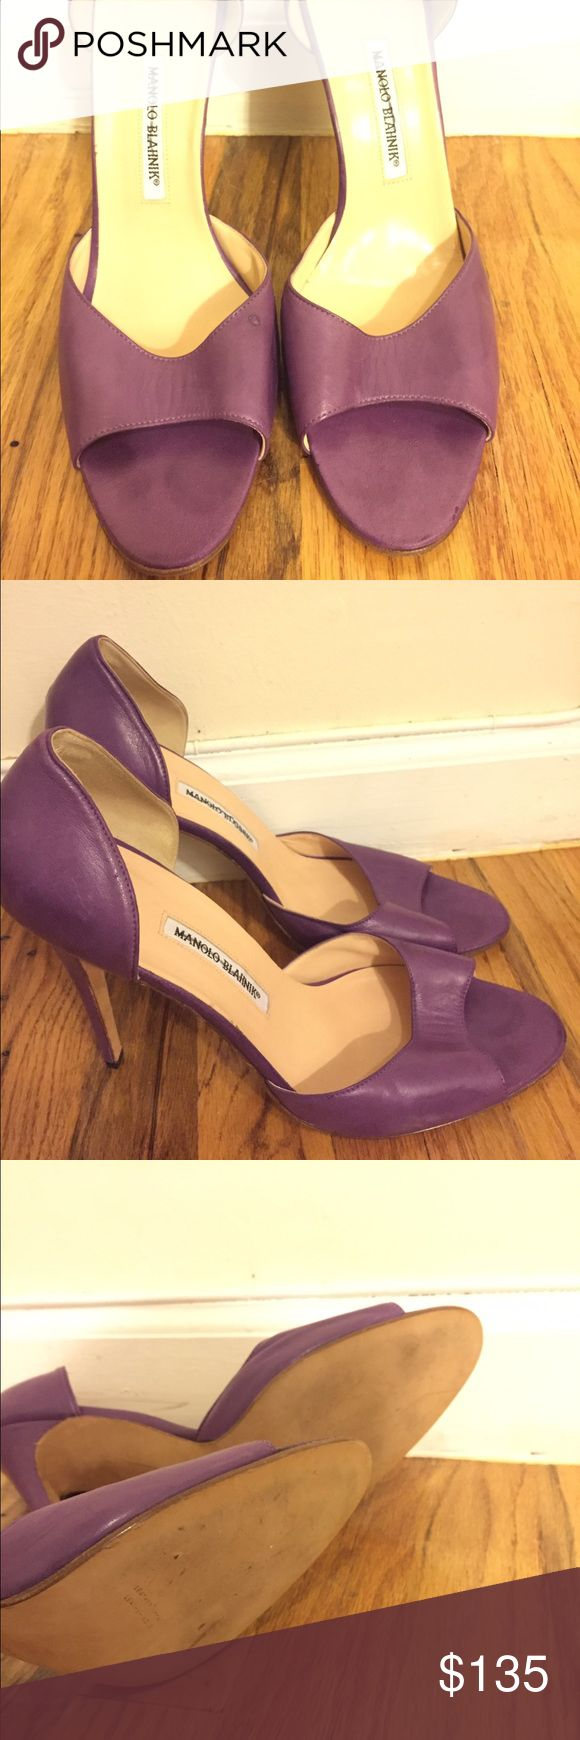 Manolo Blahnik Real smooth leather Manolo Blahnik purple shoe size 12. Heel is about 5in high. Happy Shopping!! Manolo Blahnik Shoes Sandals